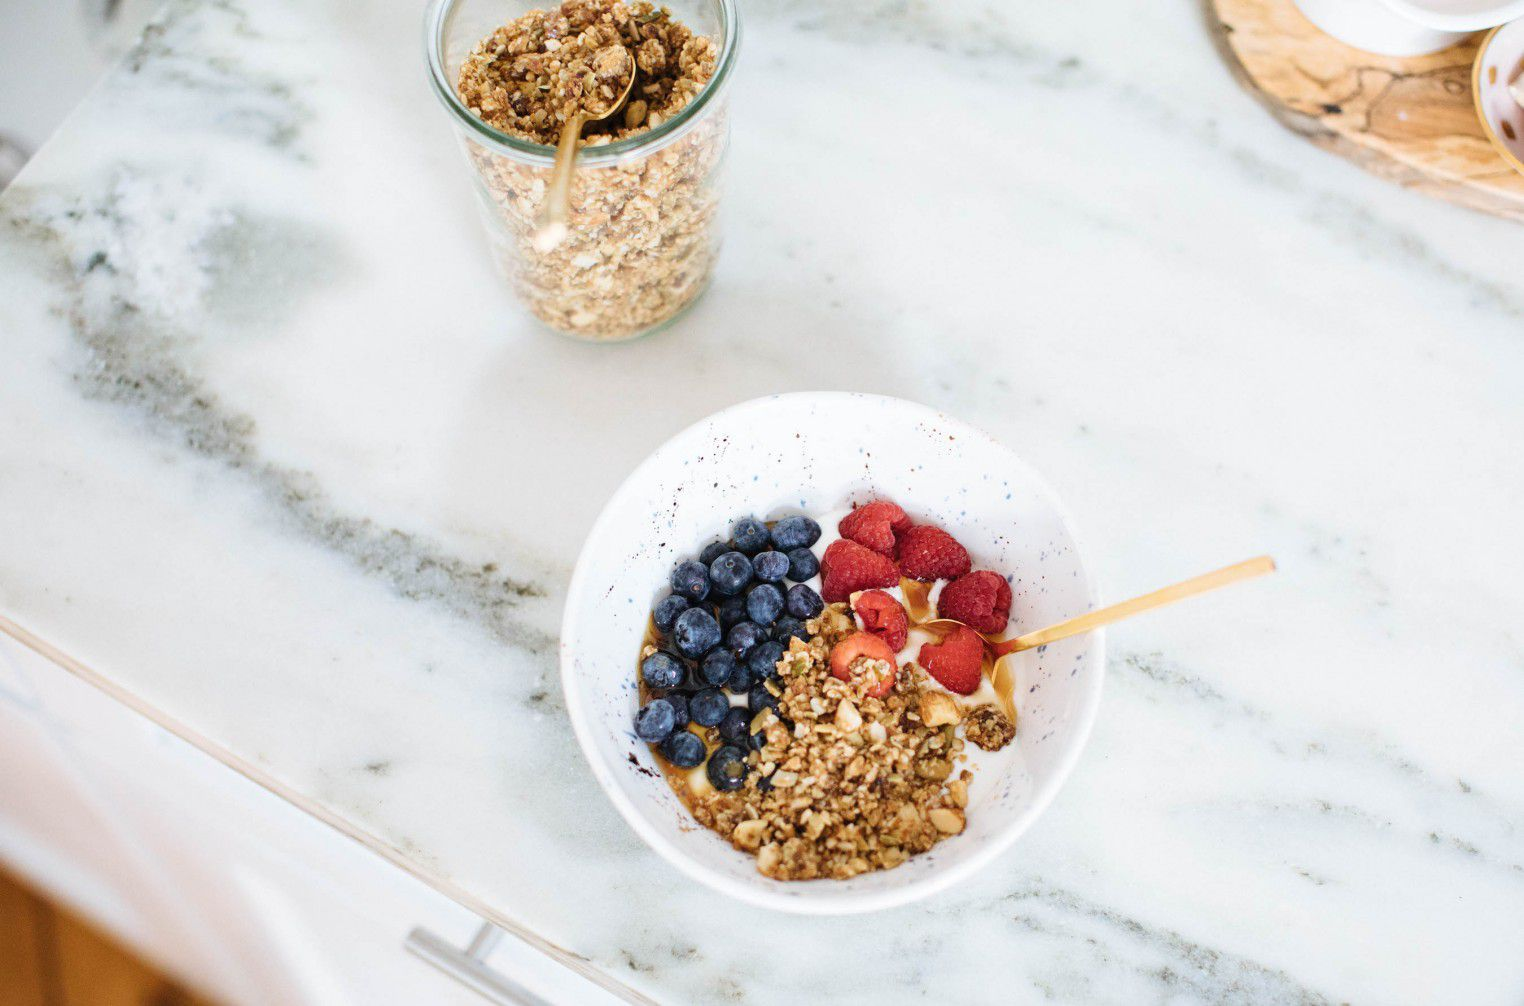 a jar of granola sits on a table or countertop beside a bowl of yogurt topped with granola and berries.